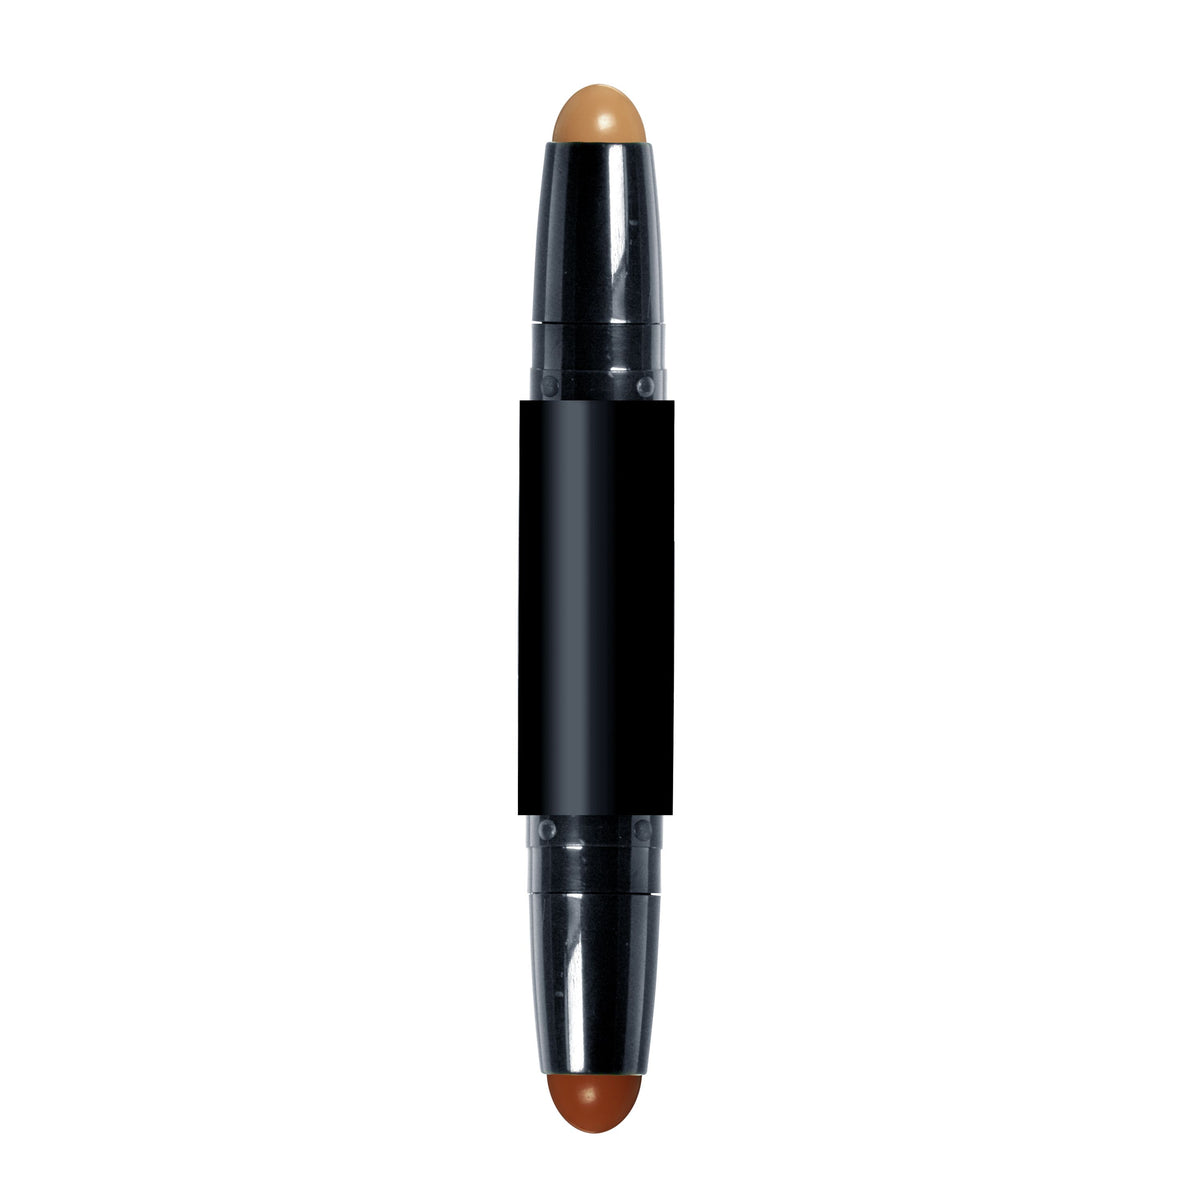 Free Sample - Defining Duet Contour Stick - Medium